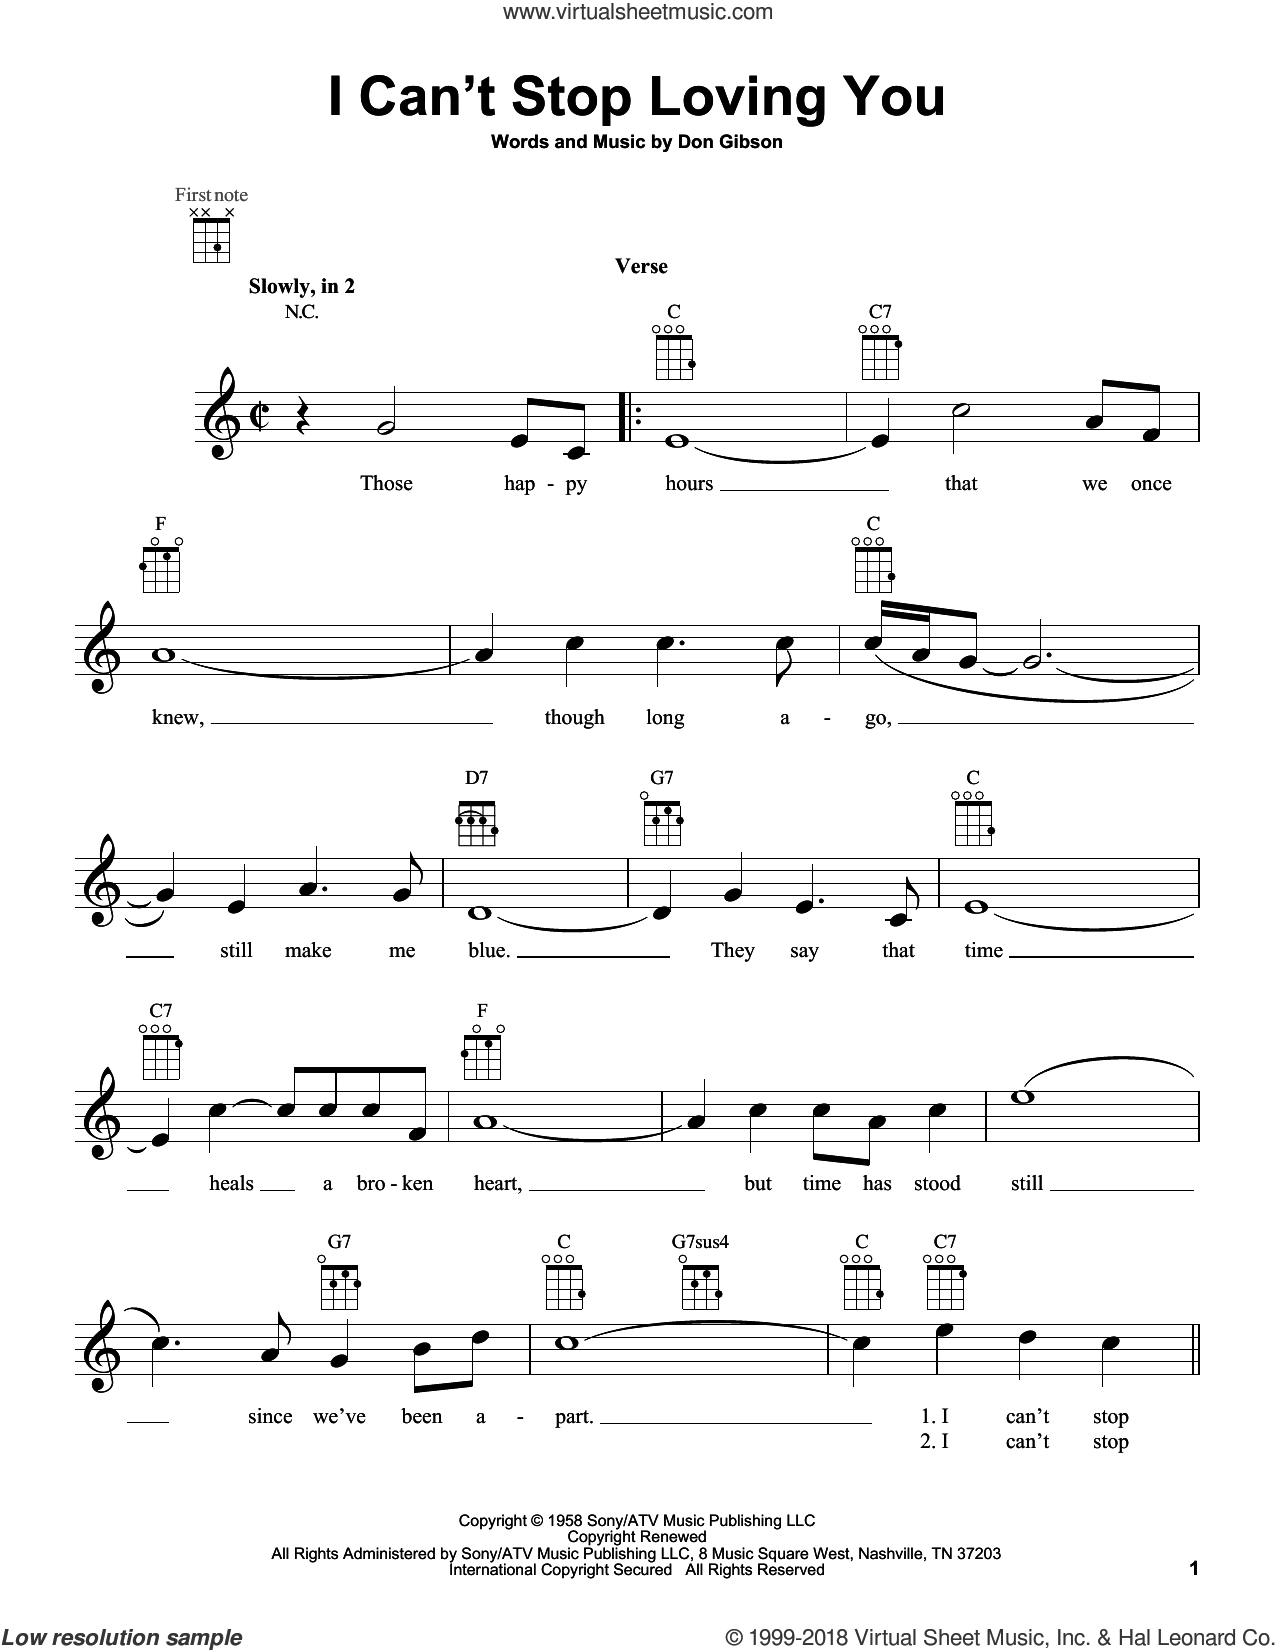 I Can't Stop Loving You sheet music for ukulele by Don Gibson, Conway Twitty, Elvis Presley and Ray Charles. Score Image Preview.